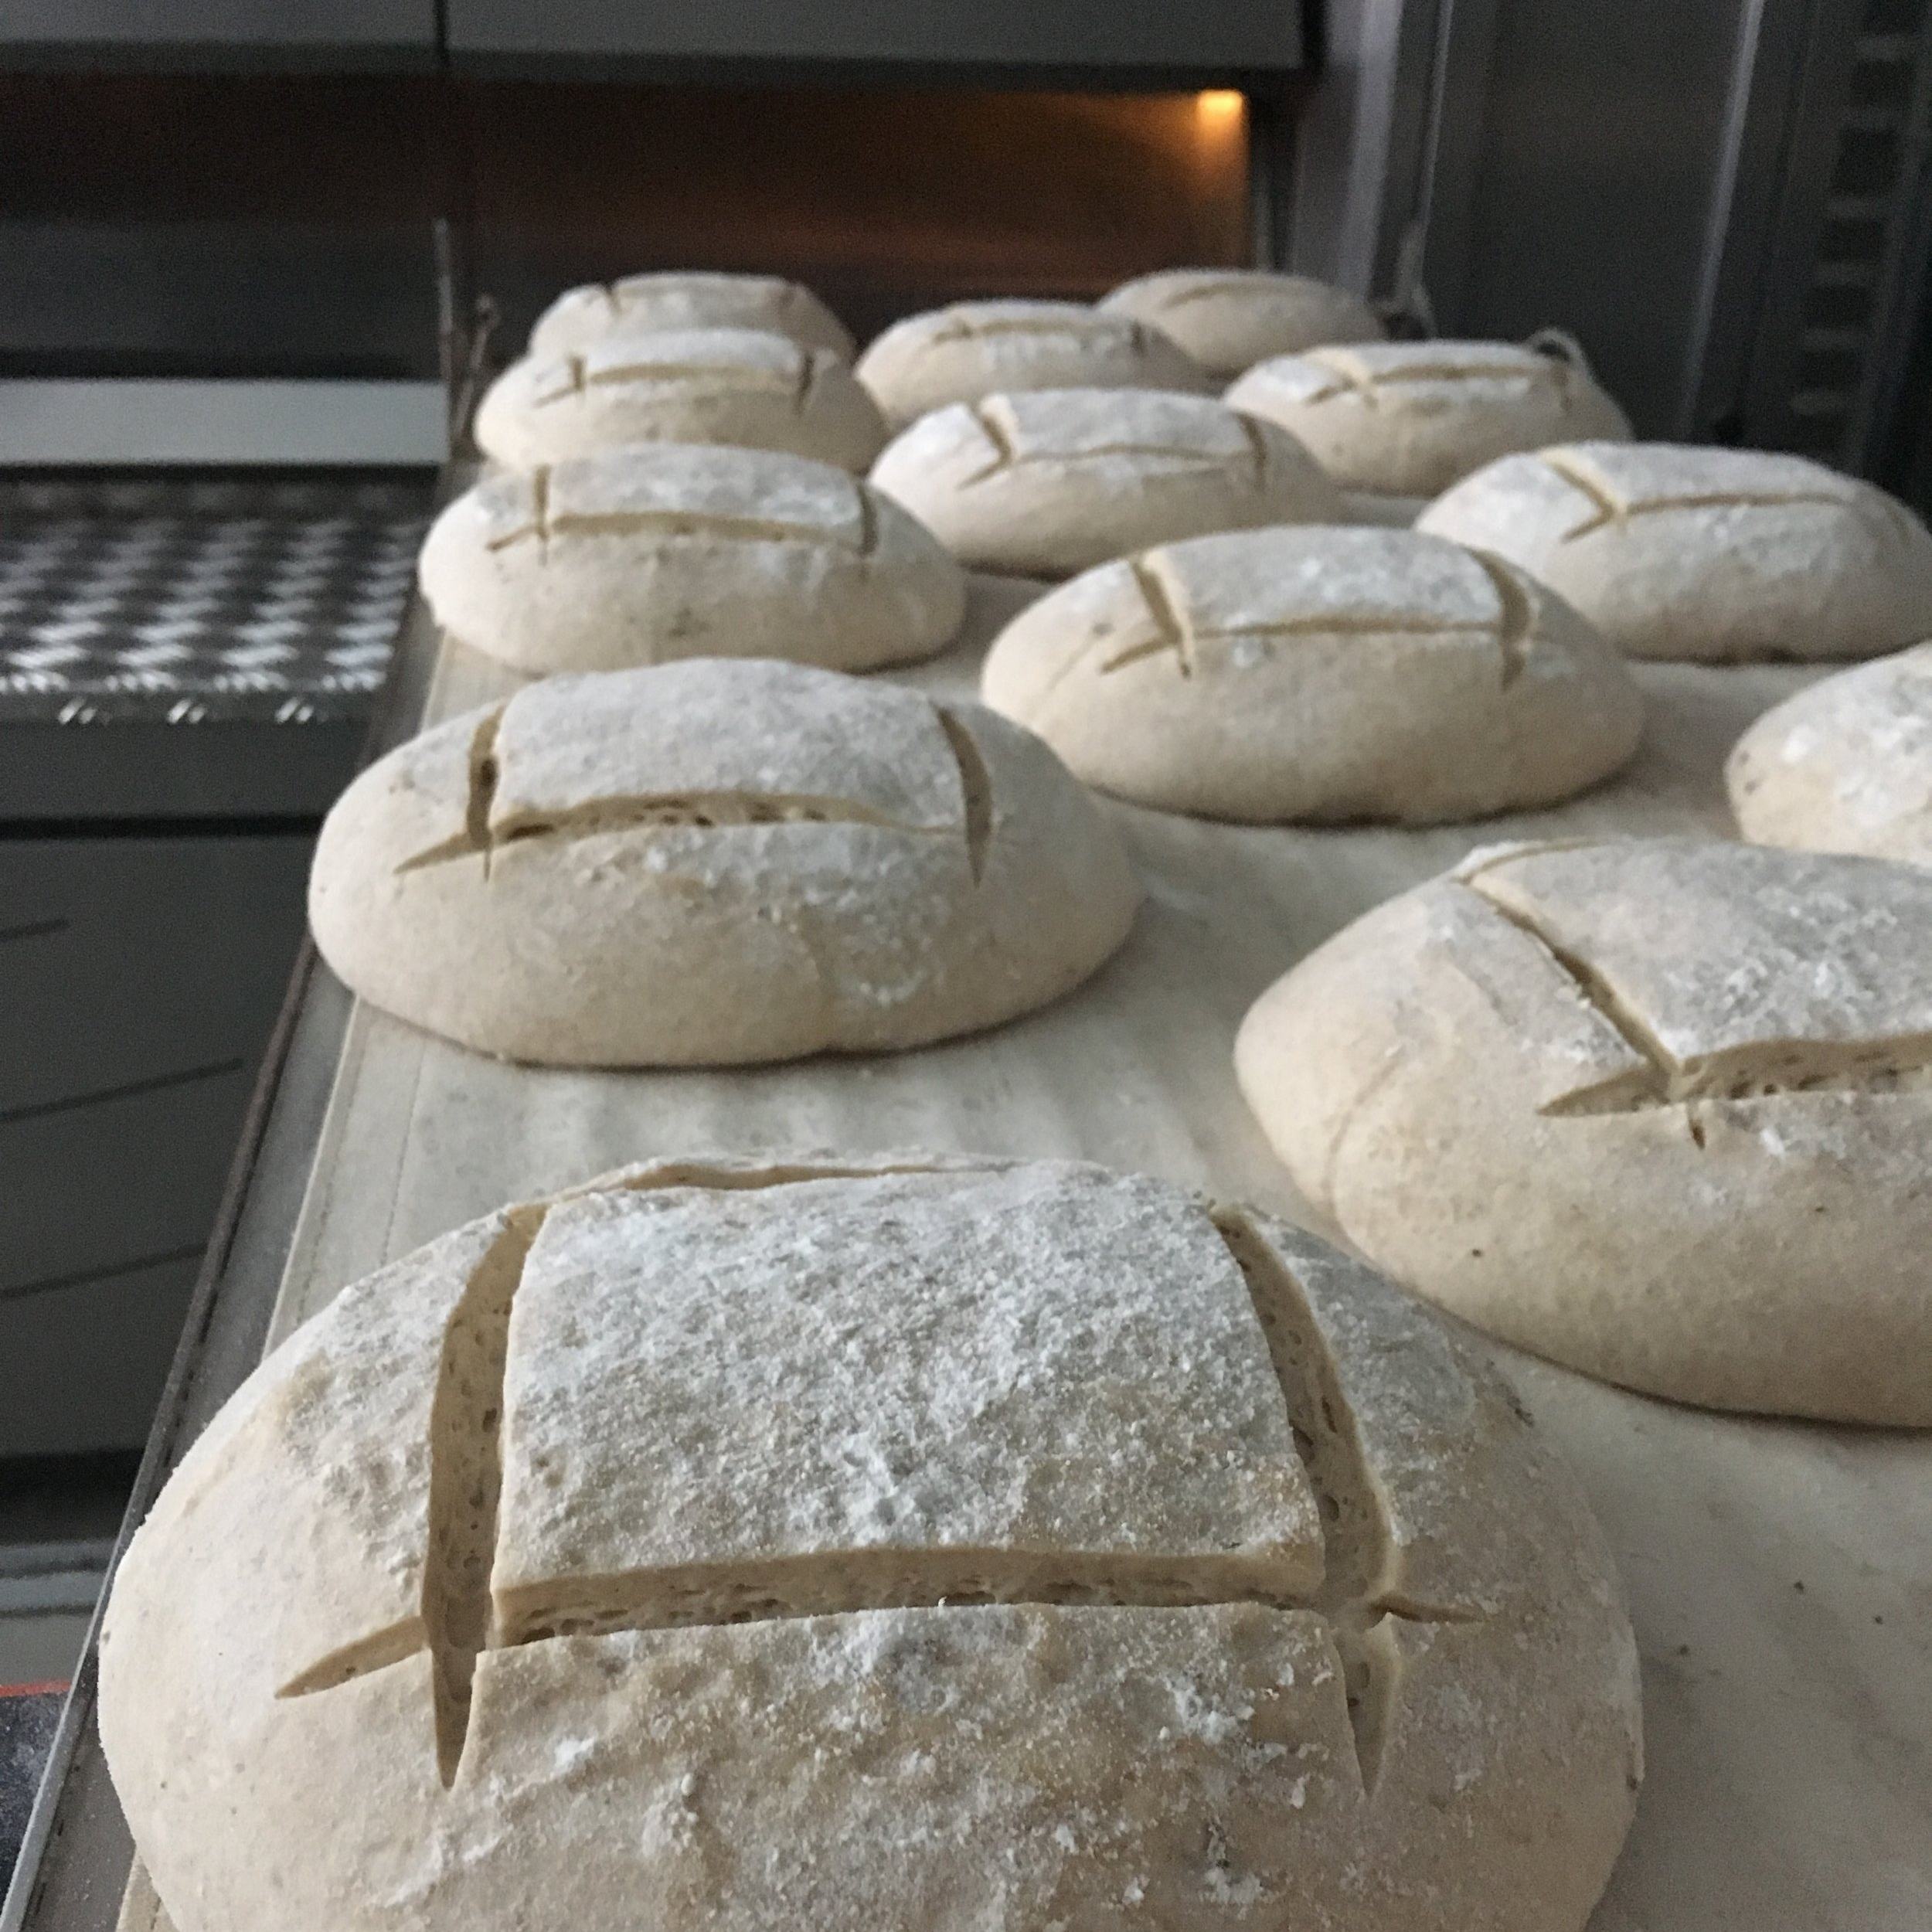 At the Bakery - Our flour is organic, our bakery small and our products individually handcrafted. From croissant, to 5 grain, parmesan pepper and olive breads offering premium quality created with mindfulness is our joy. And don't forget the Oh!s.